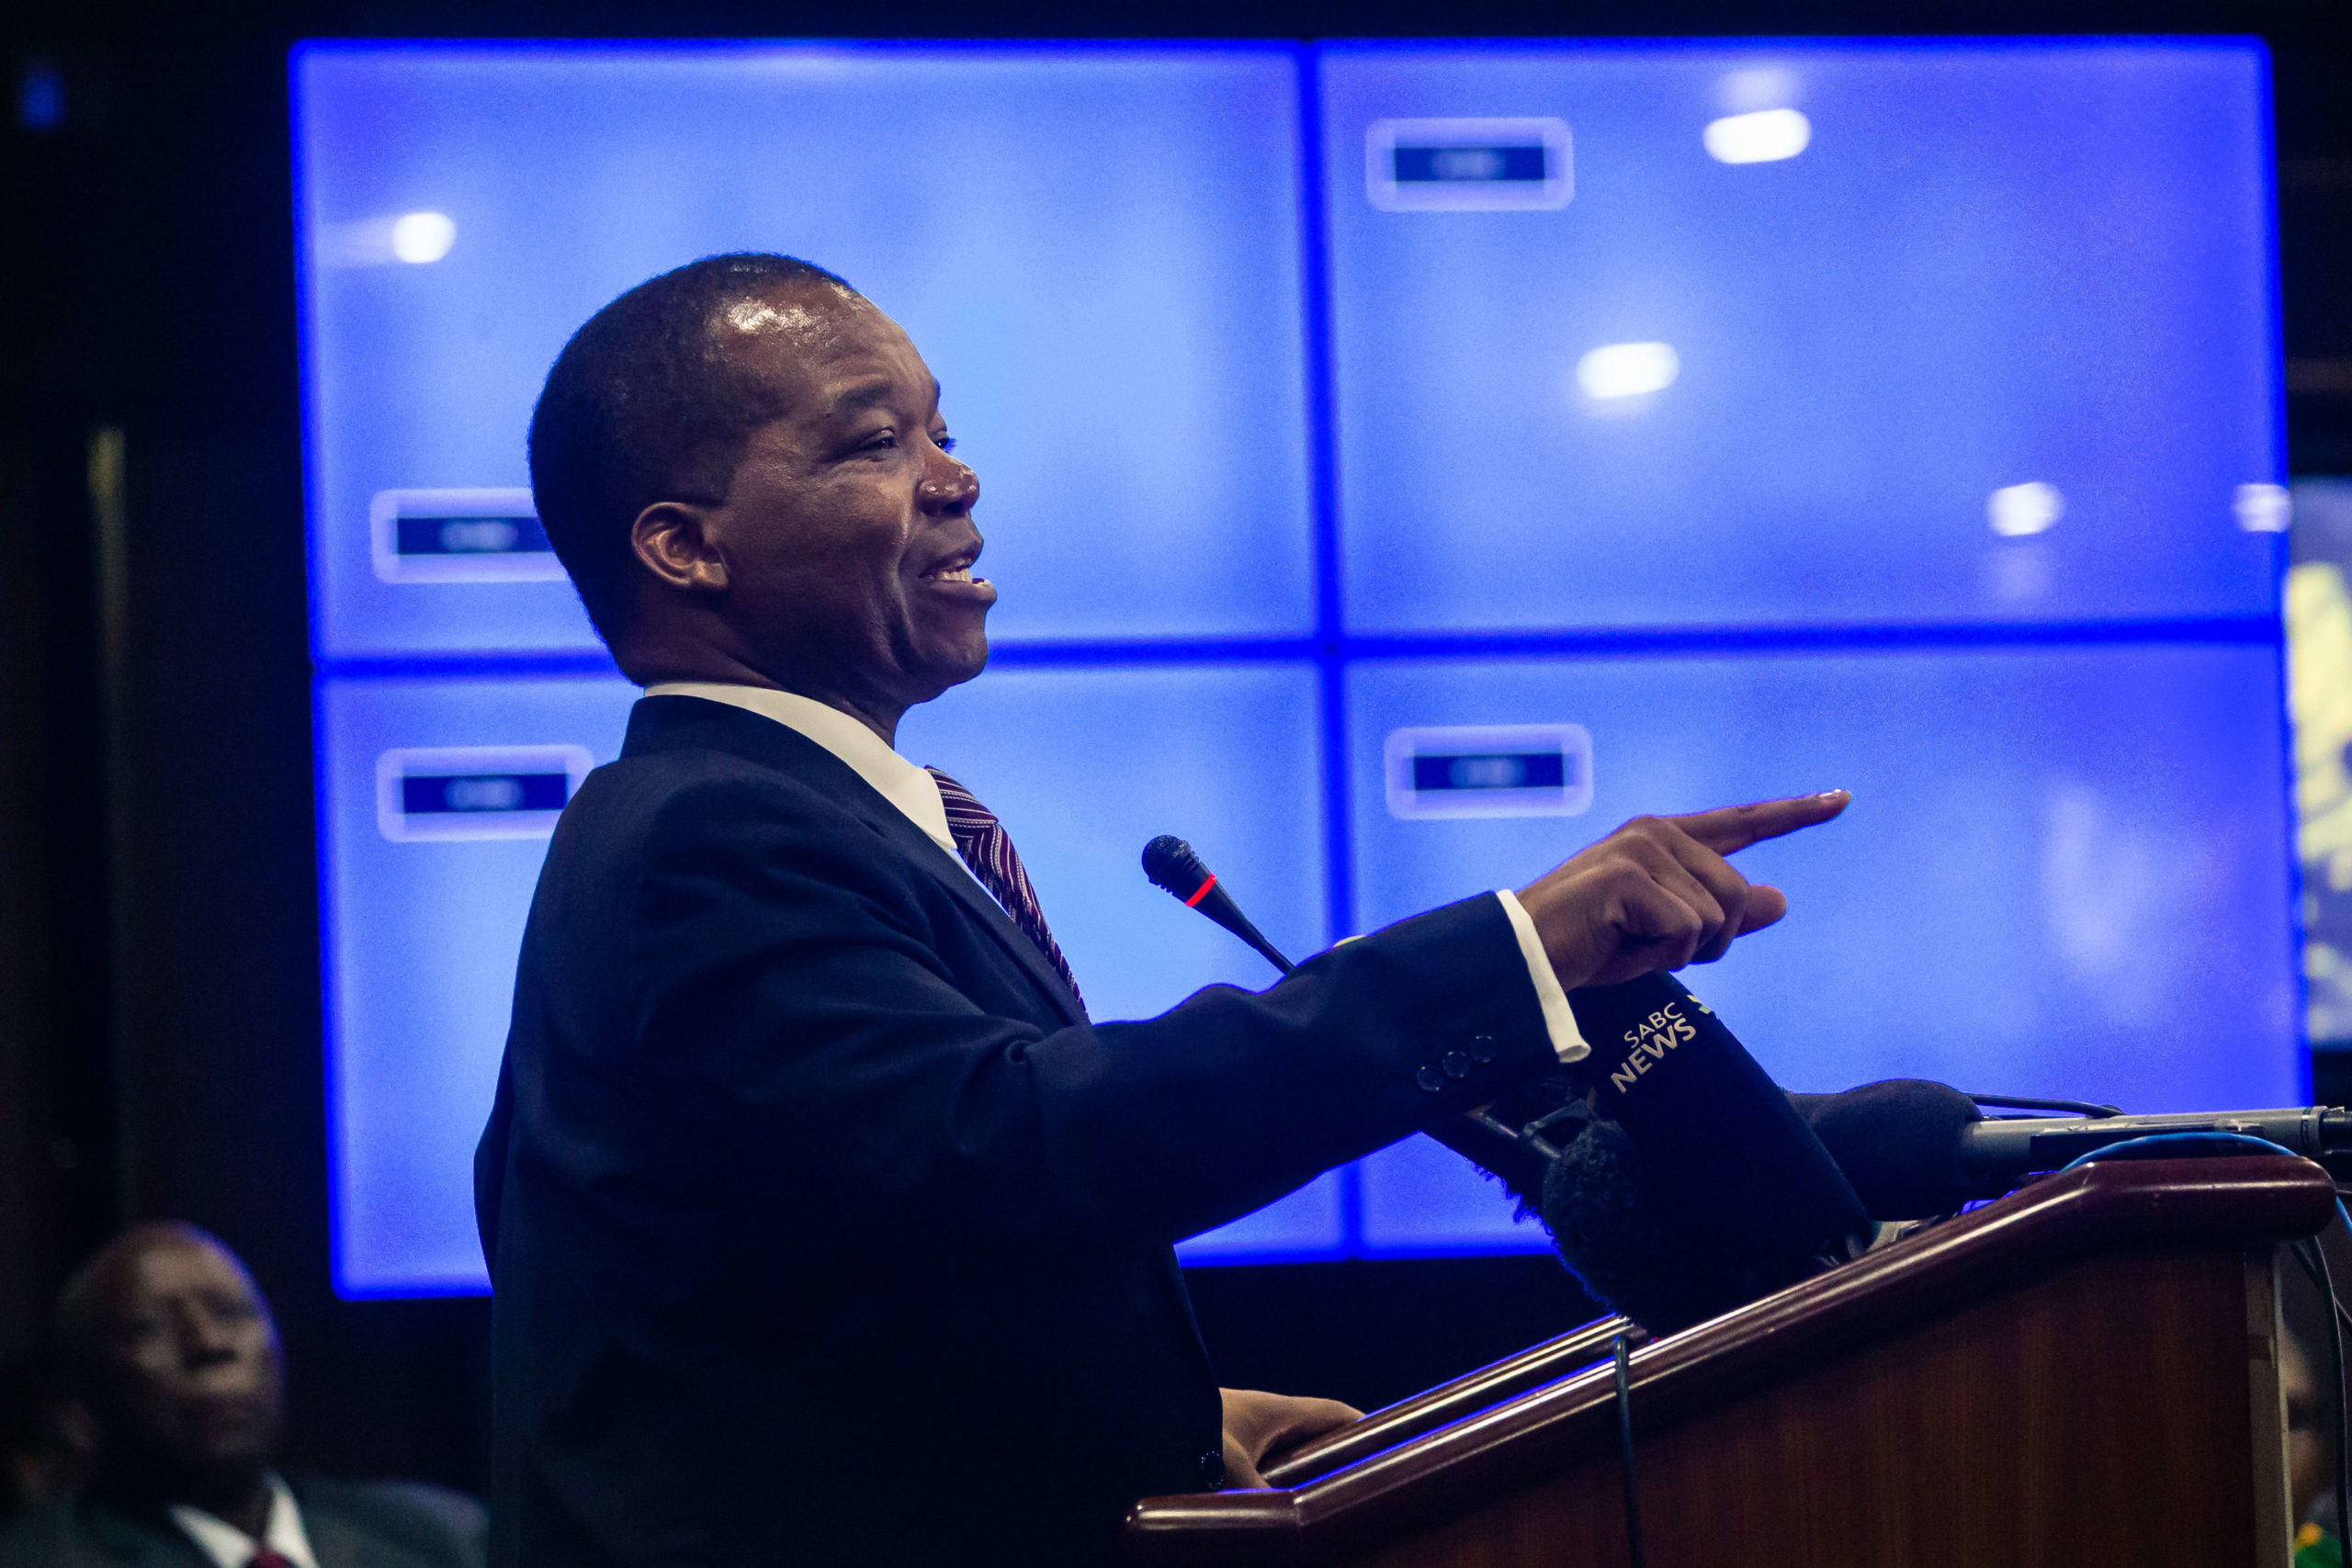 Zimbabwe Reserve Bank Governor John Mangudya delivers his Monetory Policy Statement in Harare on February 20, 2019, where he announced the establishment of an interbank foreign exchange market in the country officially abandoning the 1:1 exchange rate between the USD and the country's quasi currency the Bond note.